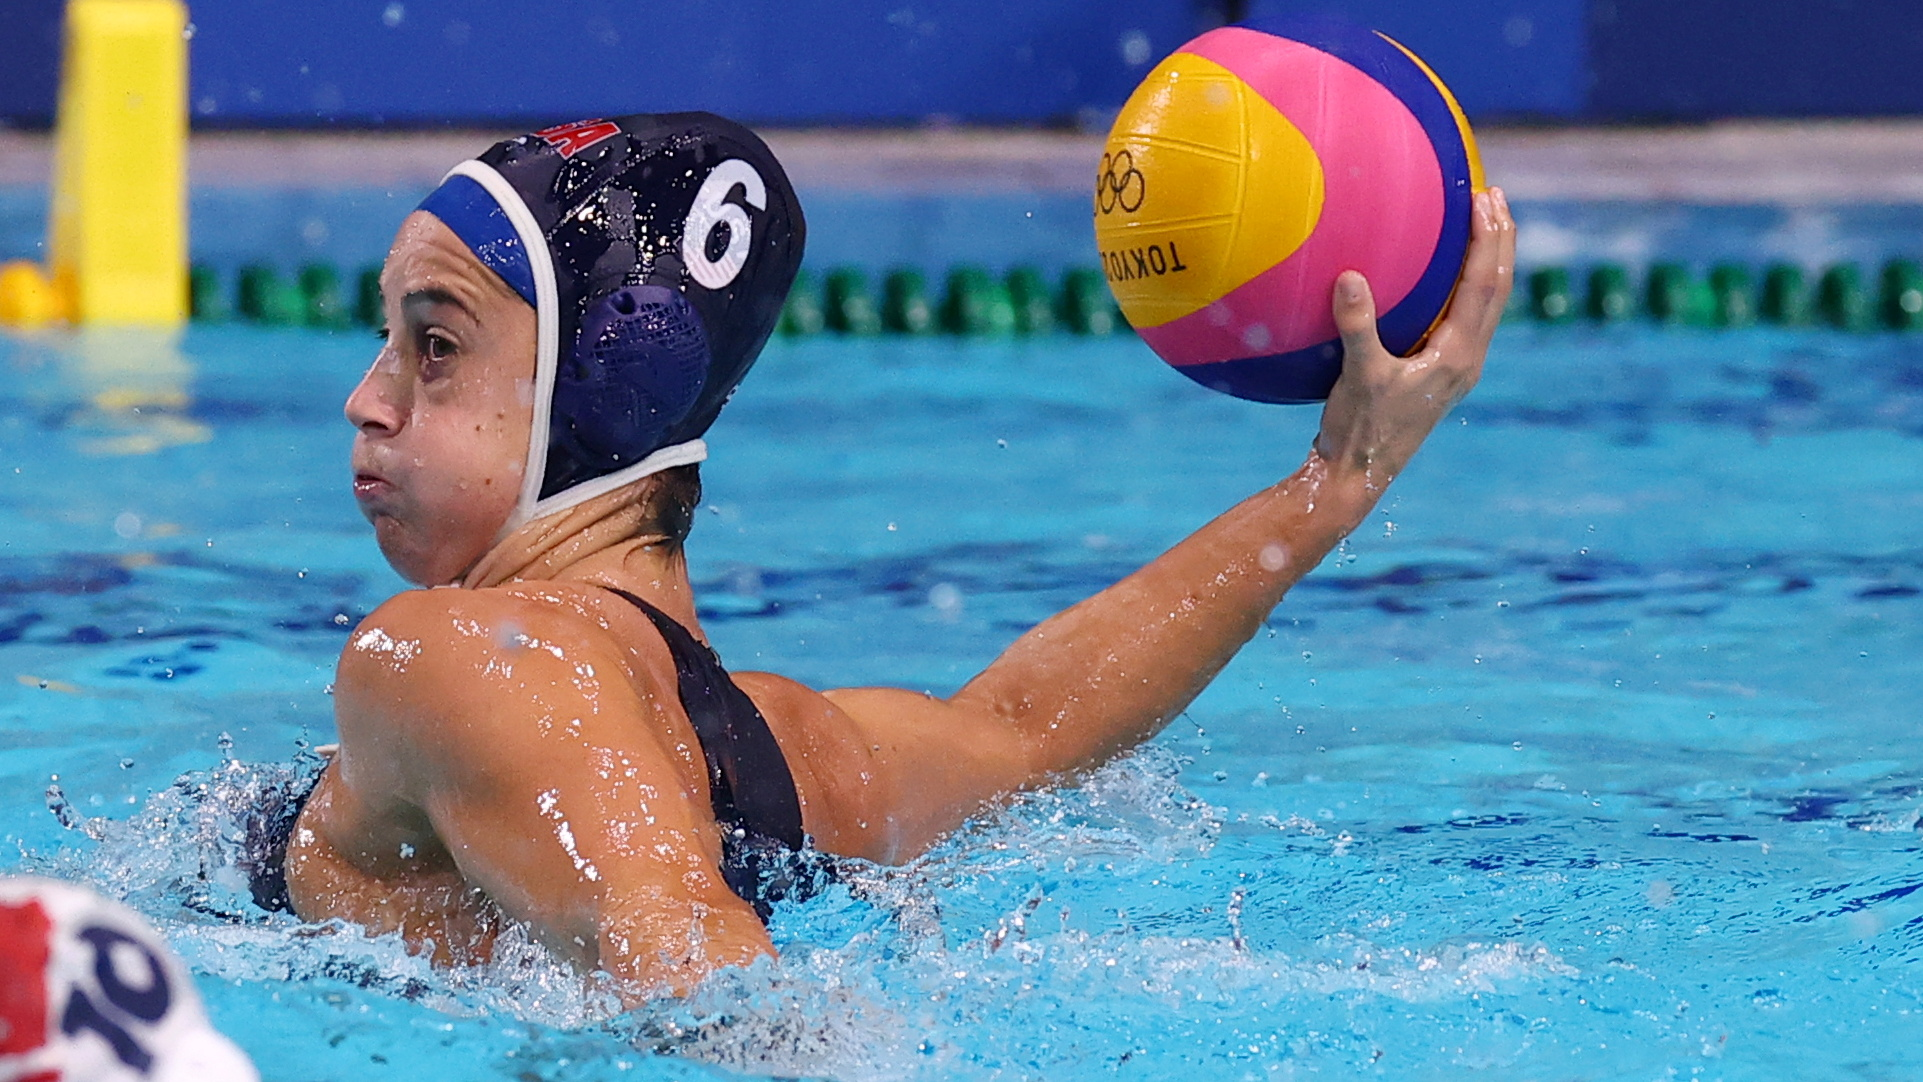 Tokyo 2020 Olympics - Water Polo - Women - Group B - Hungary v United States - Tatsumi Water Polo Centre, Tokyo, Japan - July 28, 2021. Margaret Steffens of the United States in action. REUTERS/Kacper Pempel